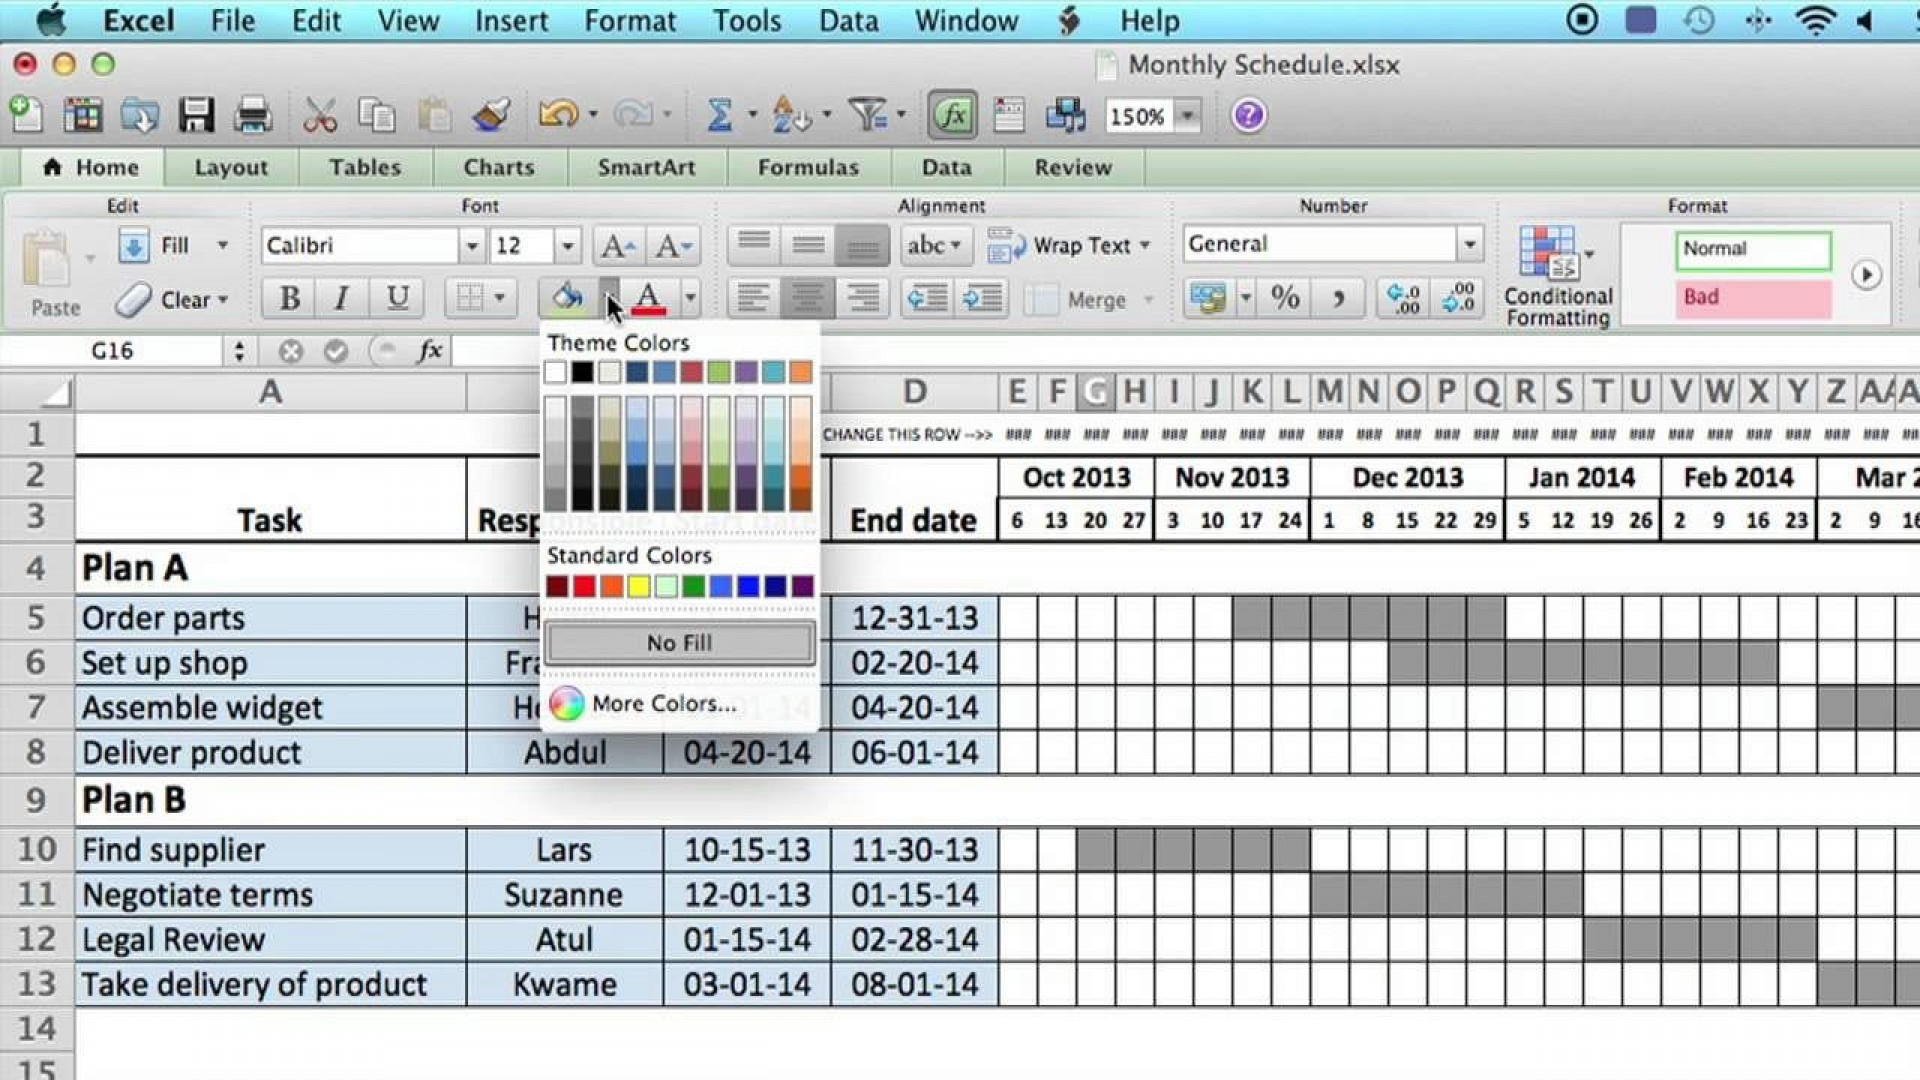 002 Stupendou Excel Work Schedule Template High Definition  Microsoft Plan Yearly Shift1920